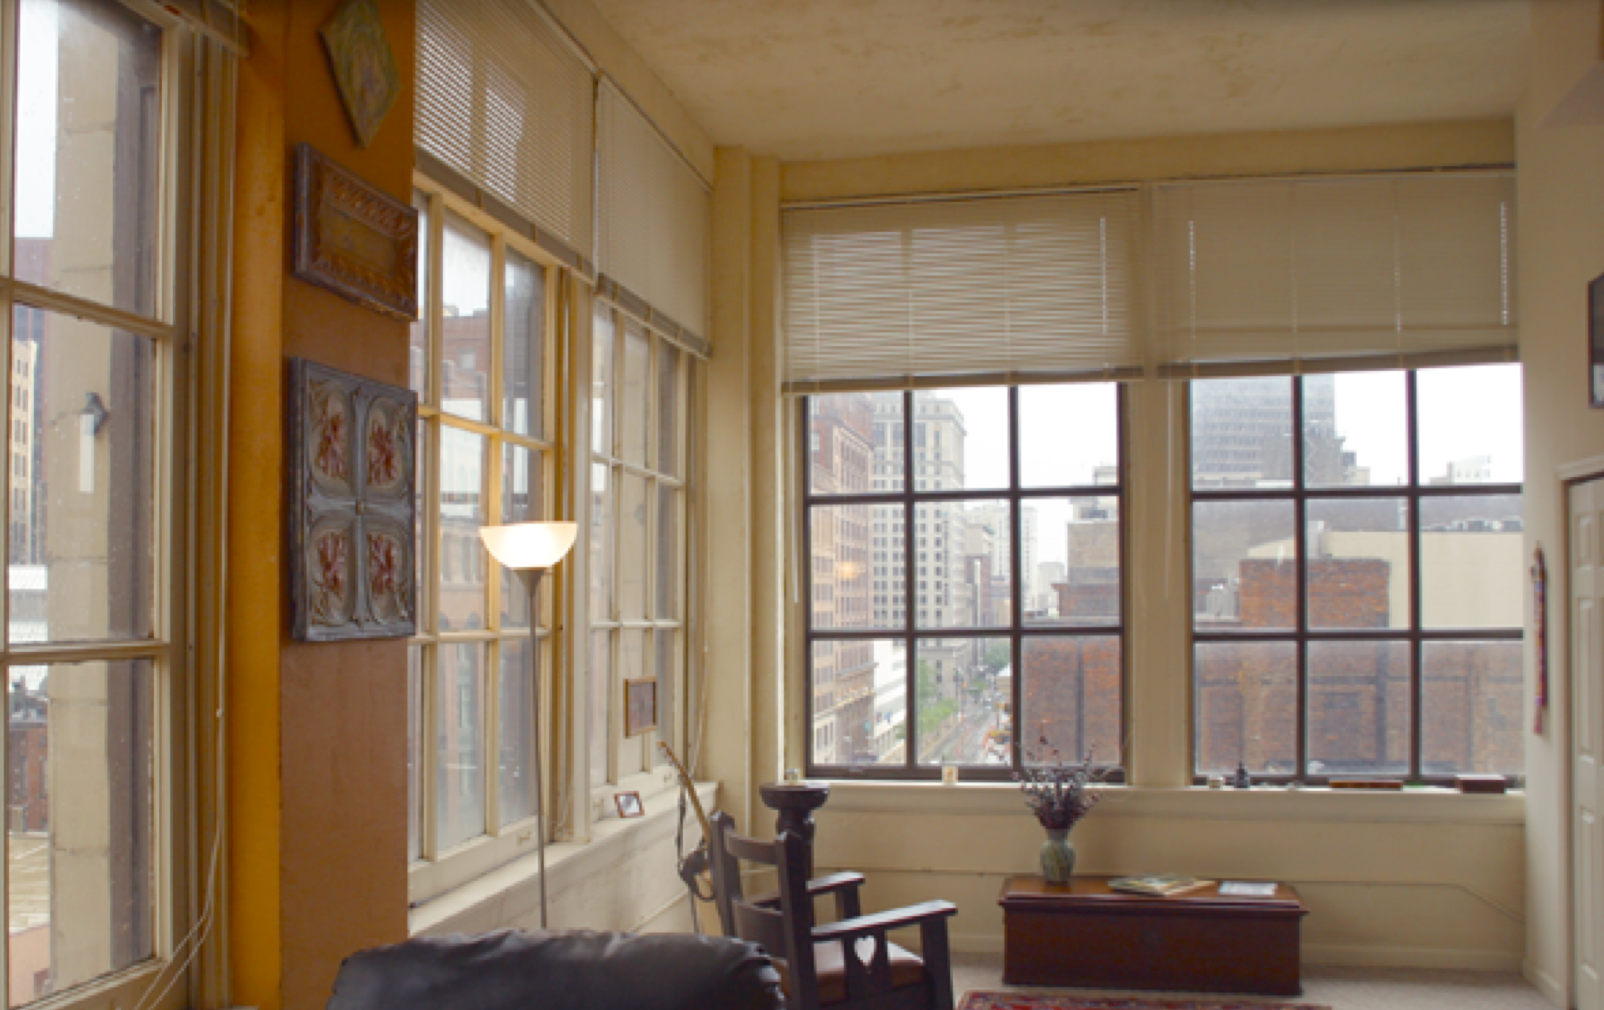 High Ceilings Large Windows Views Of Public Square And The Historic Euclid Avenue Corridor Cleveland Ohio Apartments Downtown Lofts